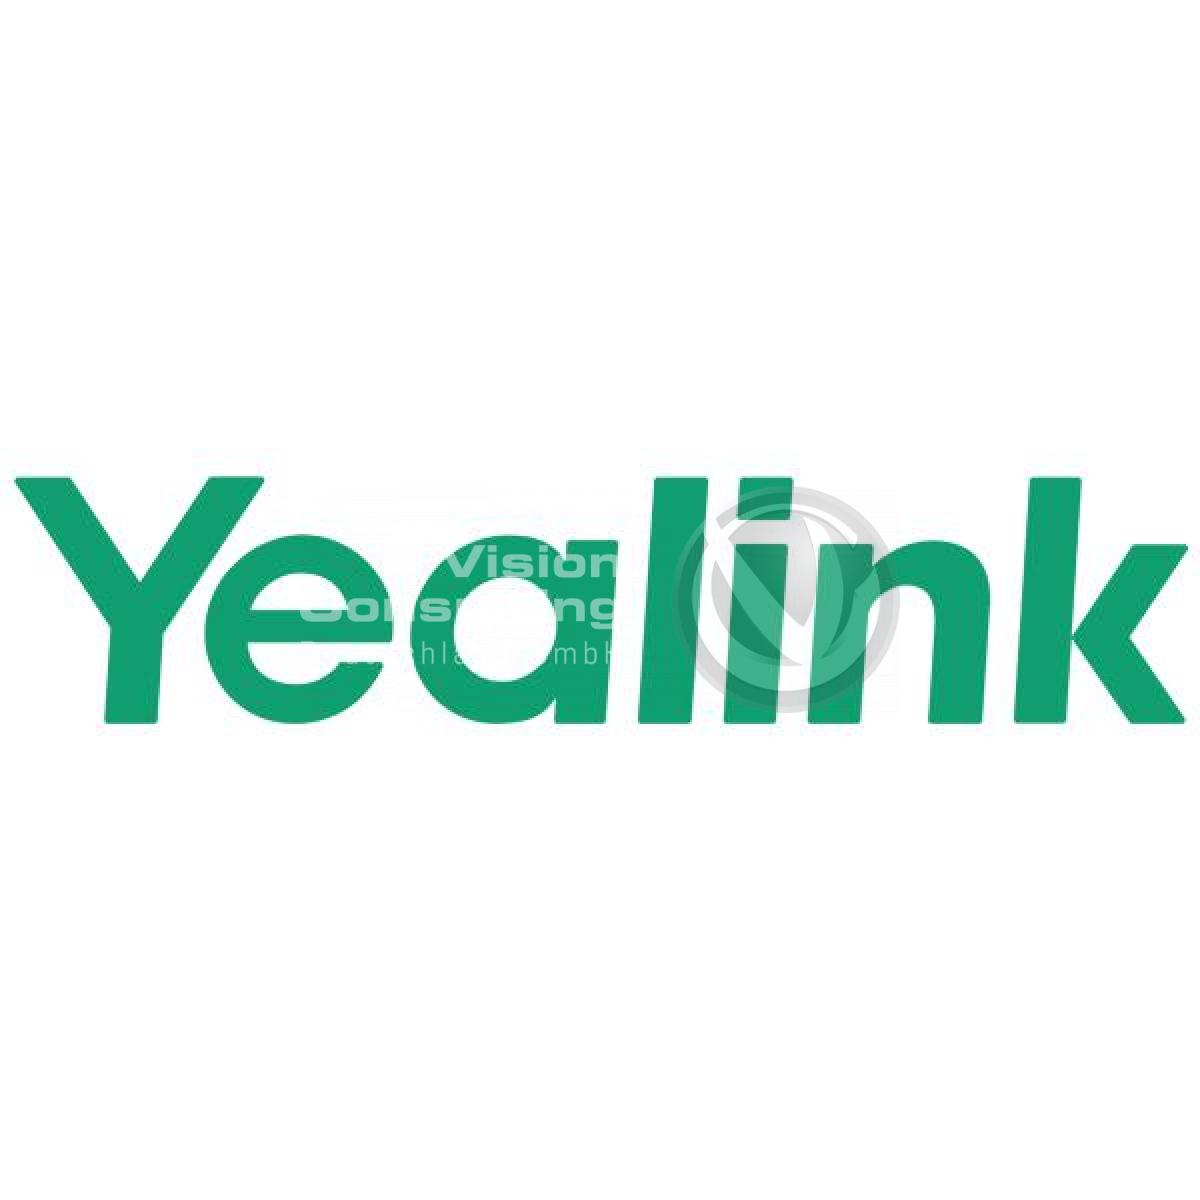 Yealink Video Conferencing - Accessory VCH50 Wired Presentation KIT